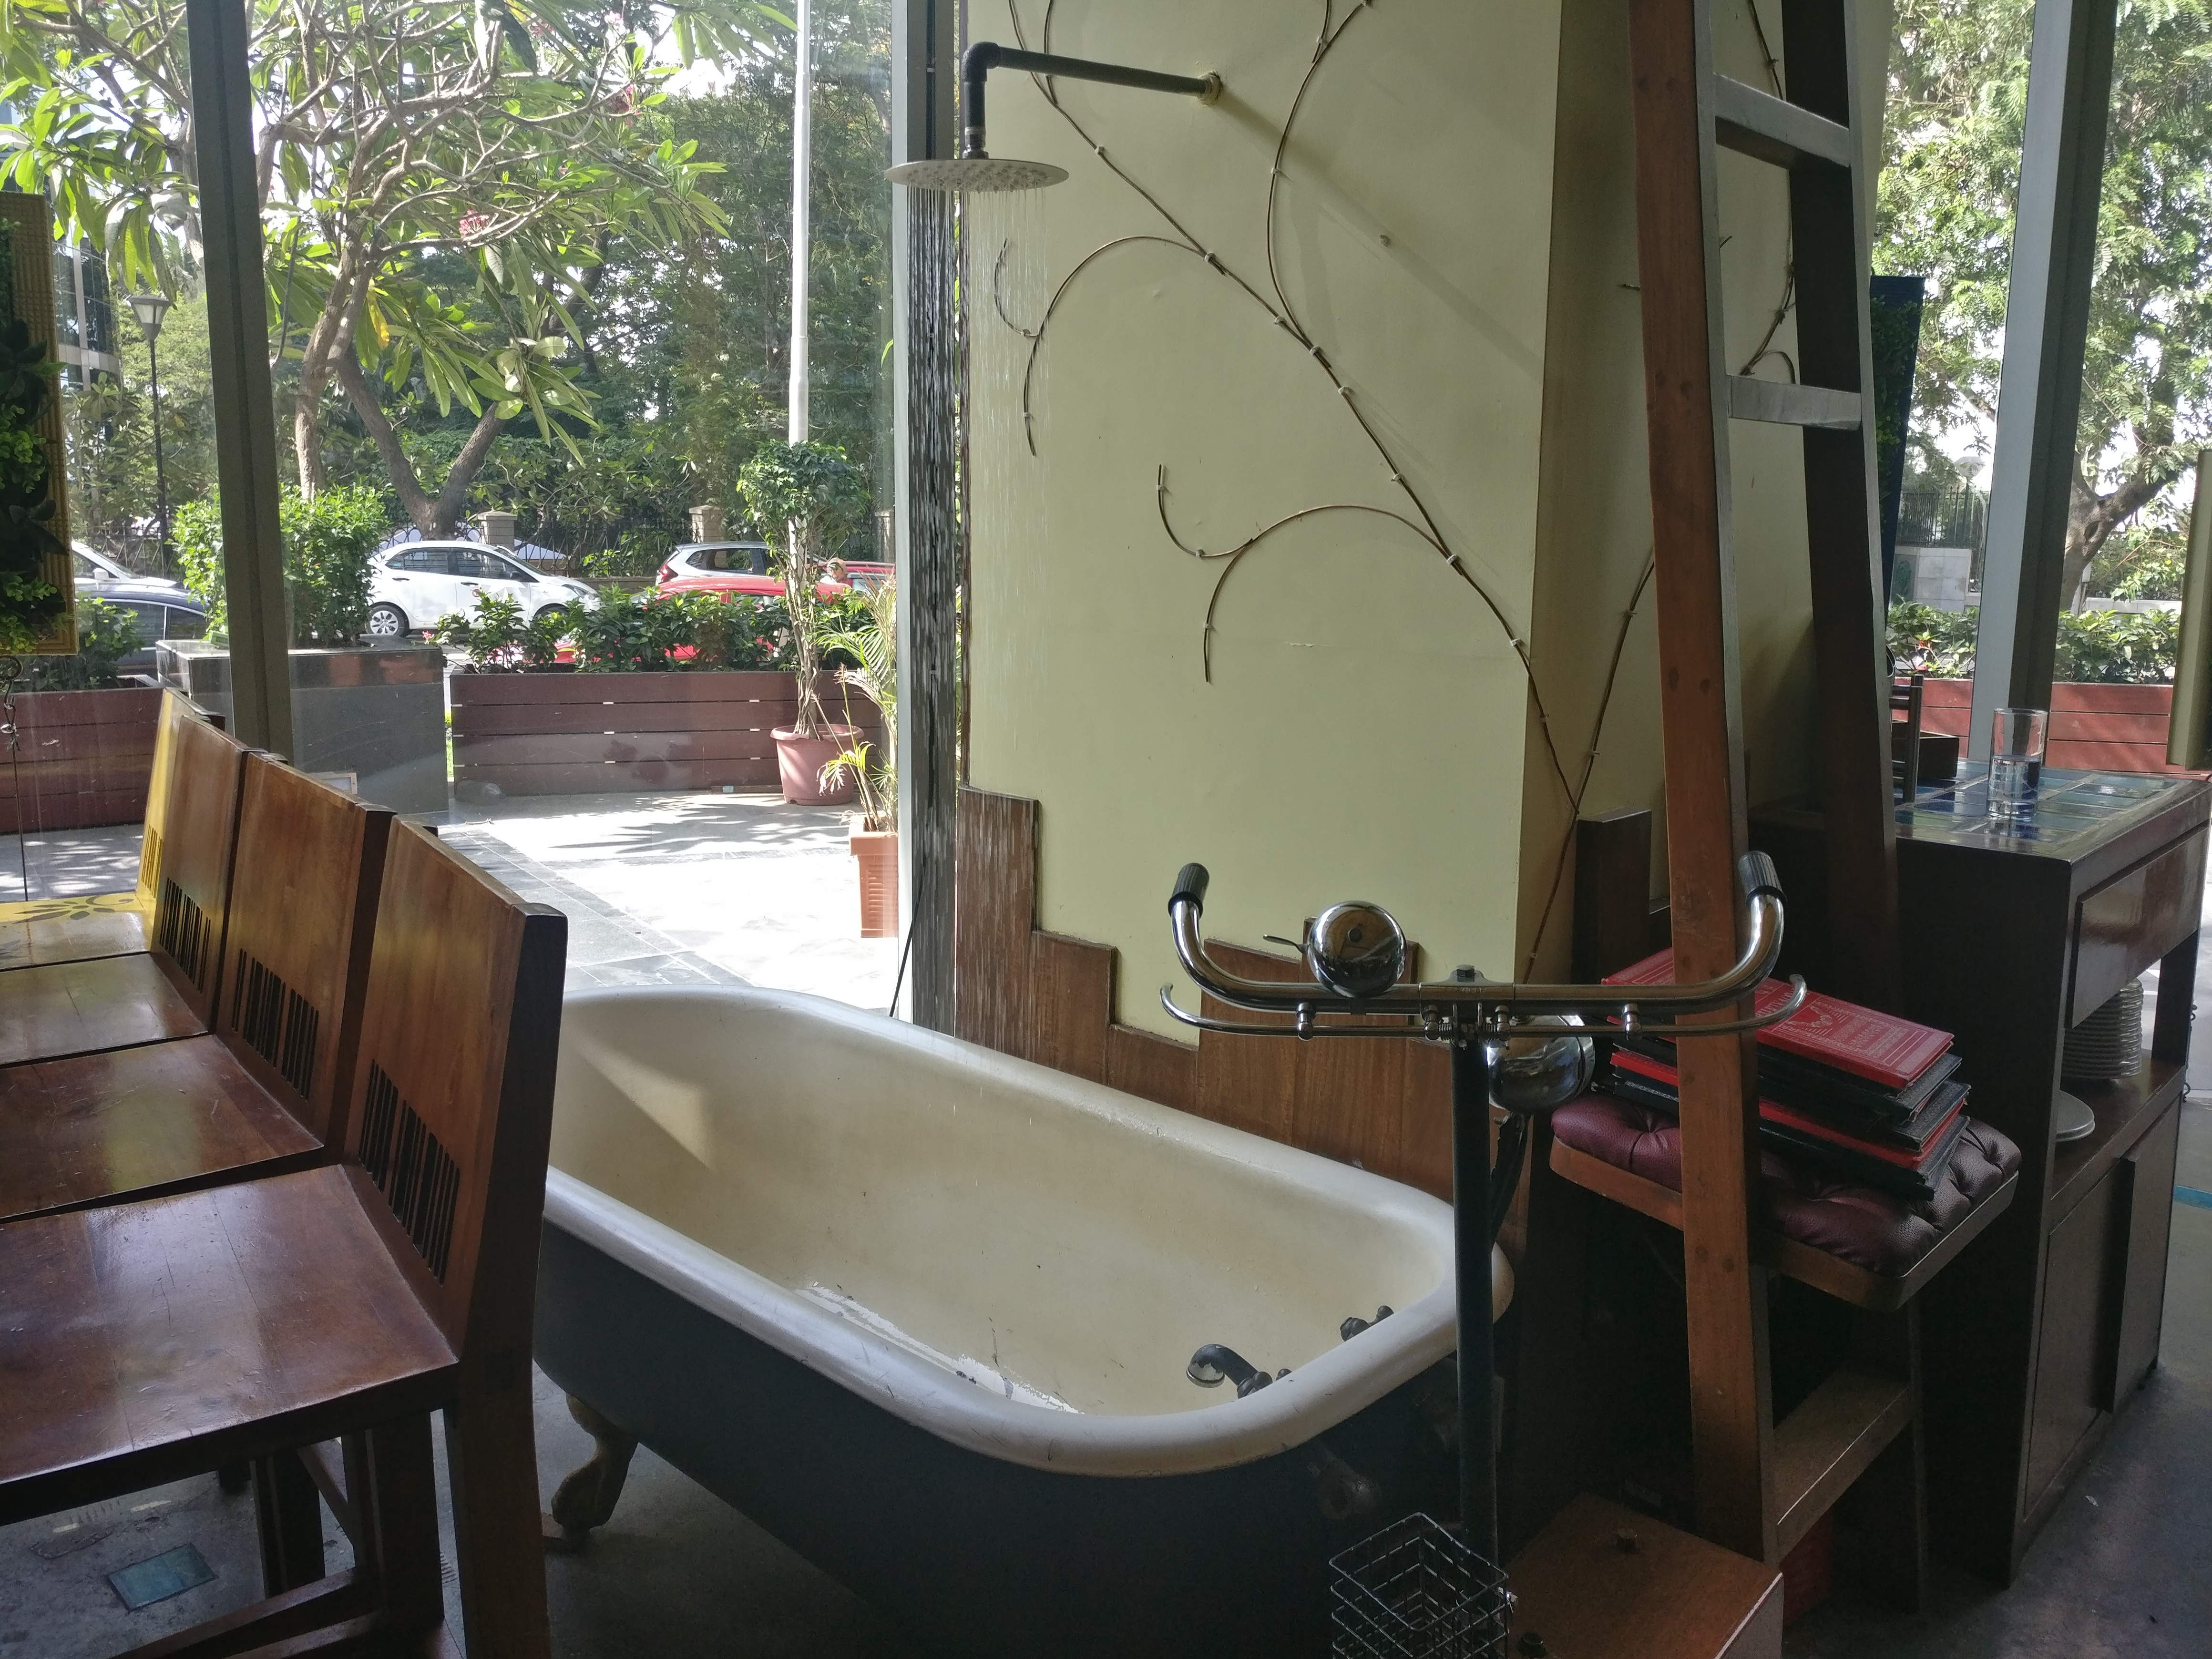 Phone Booth, Bathtub & Yummy Food- This Restaurant Is Every Instagramer's Paradise